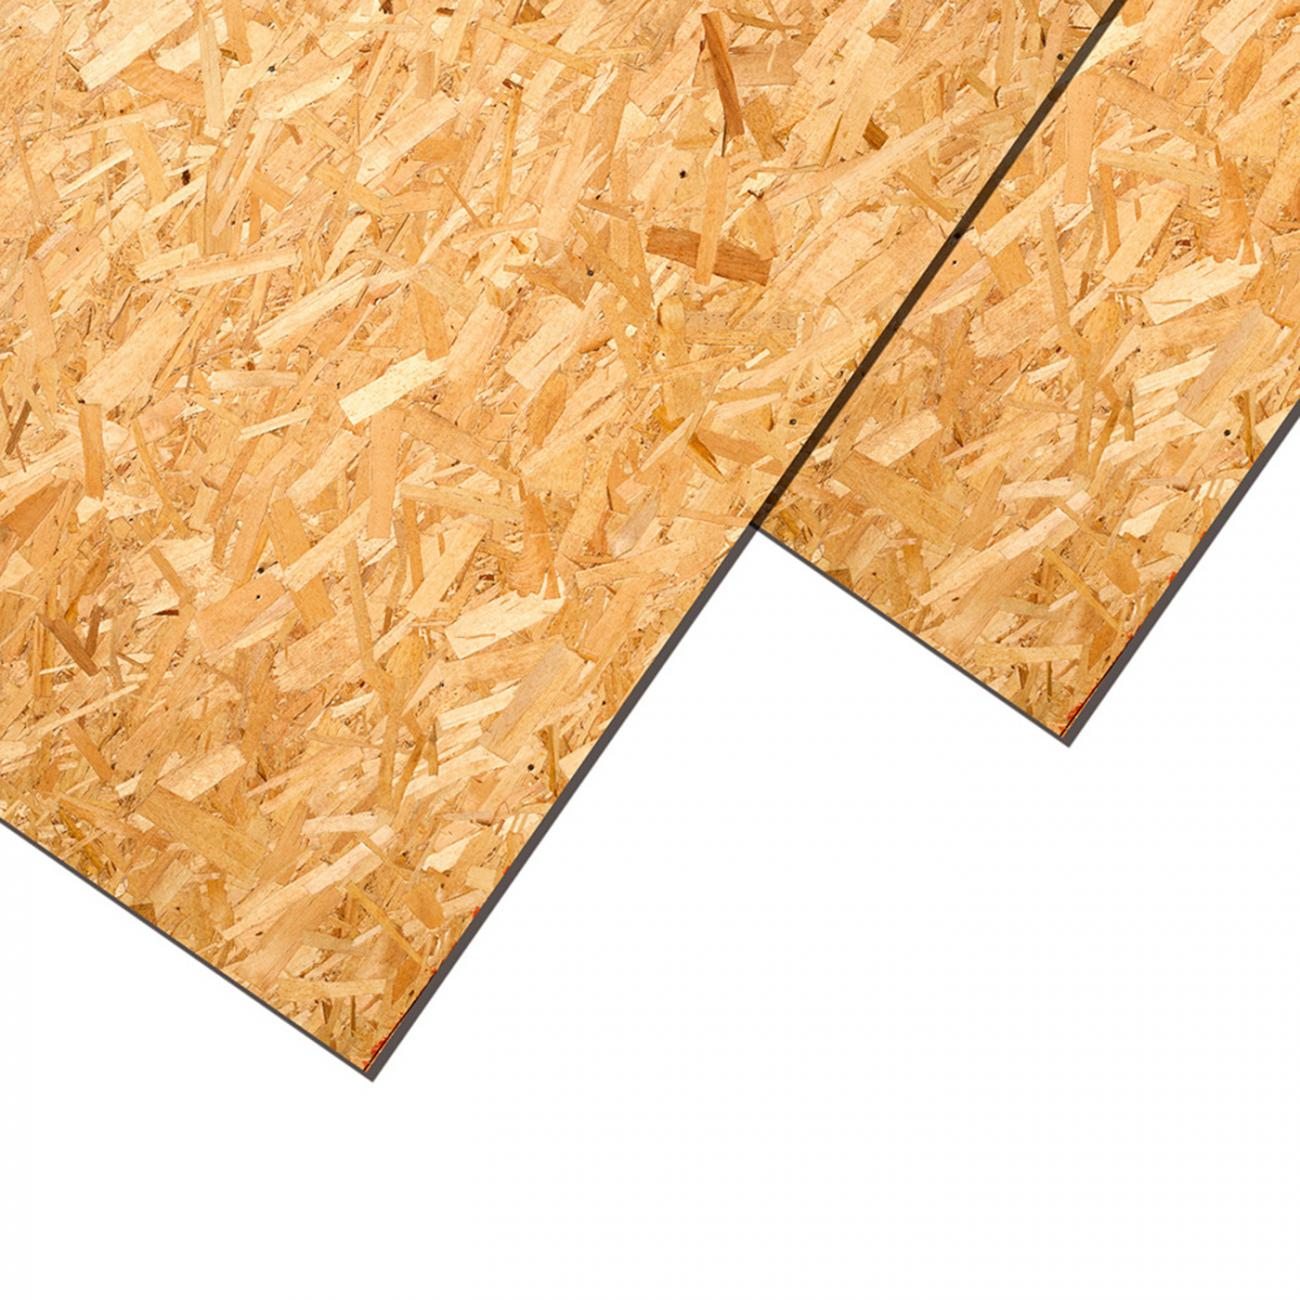 Osb - Osb 11.1mm Home 122x244